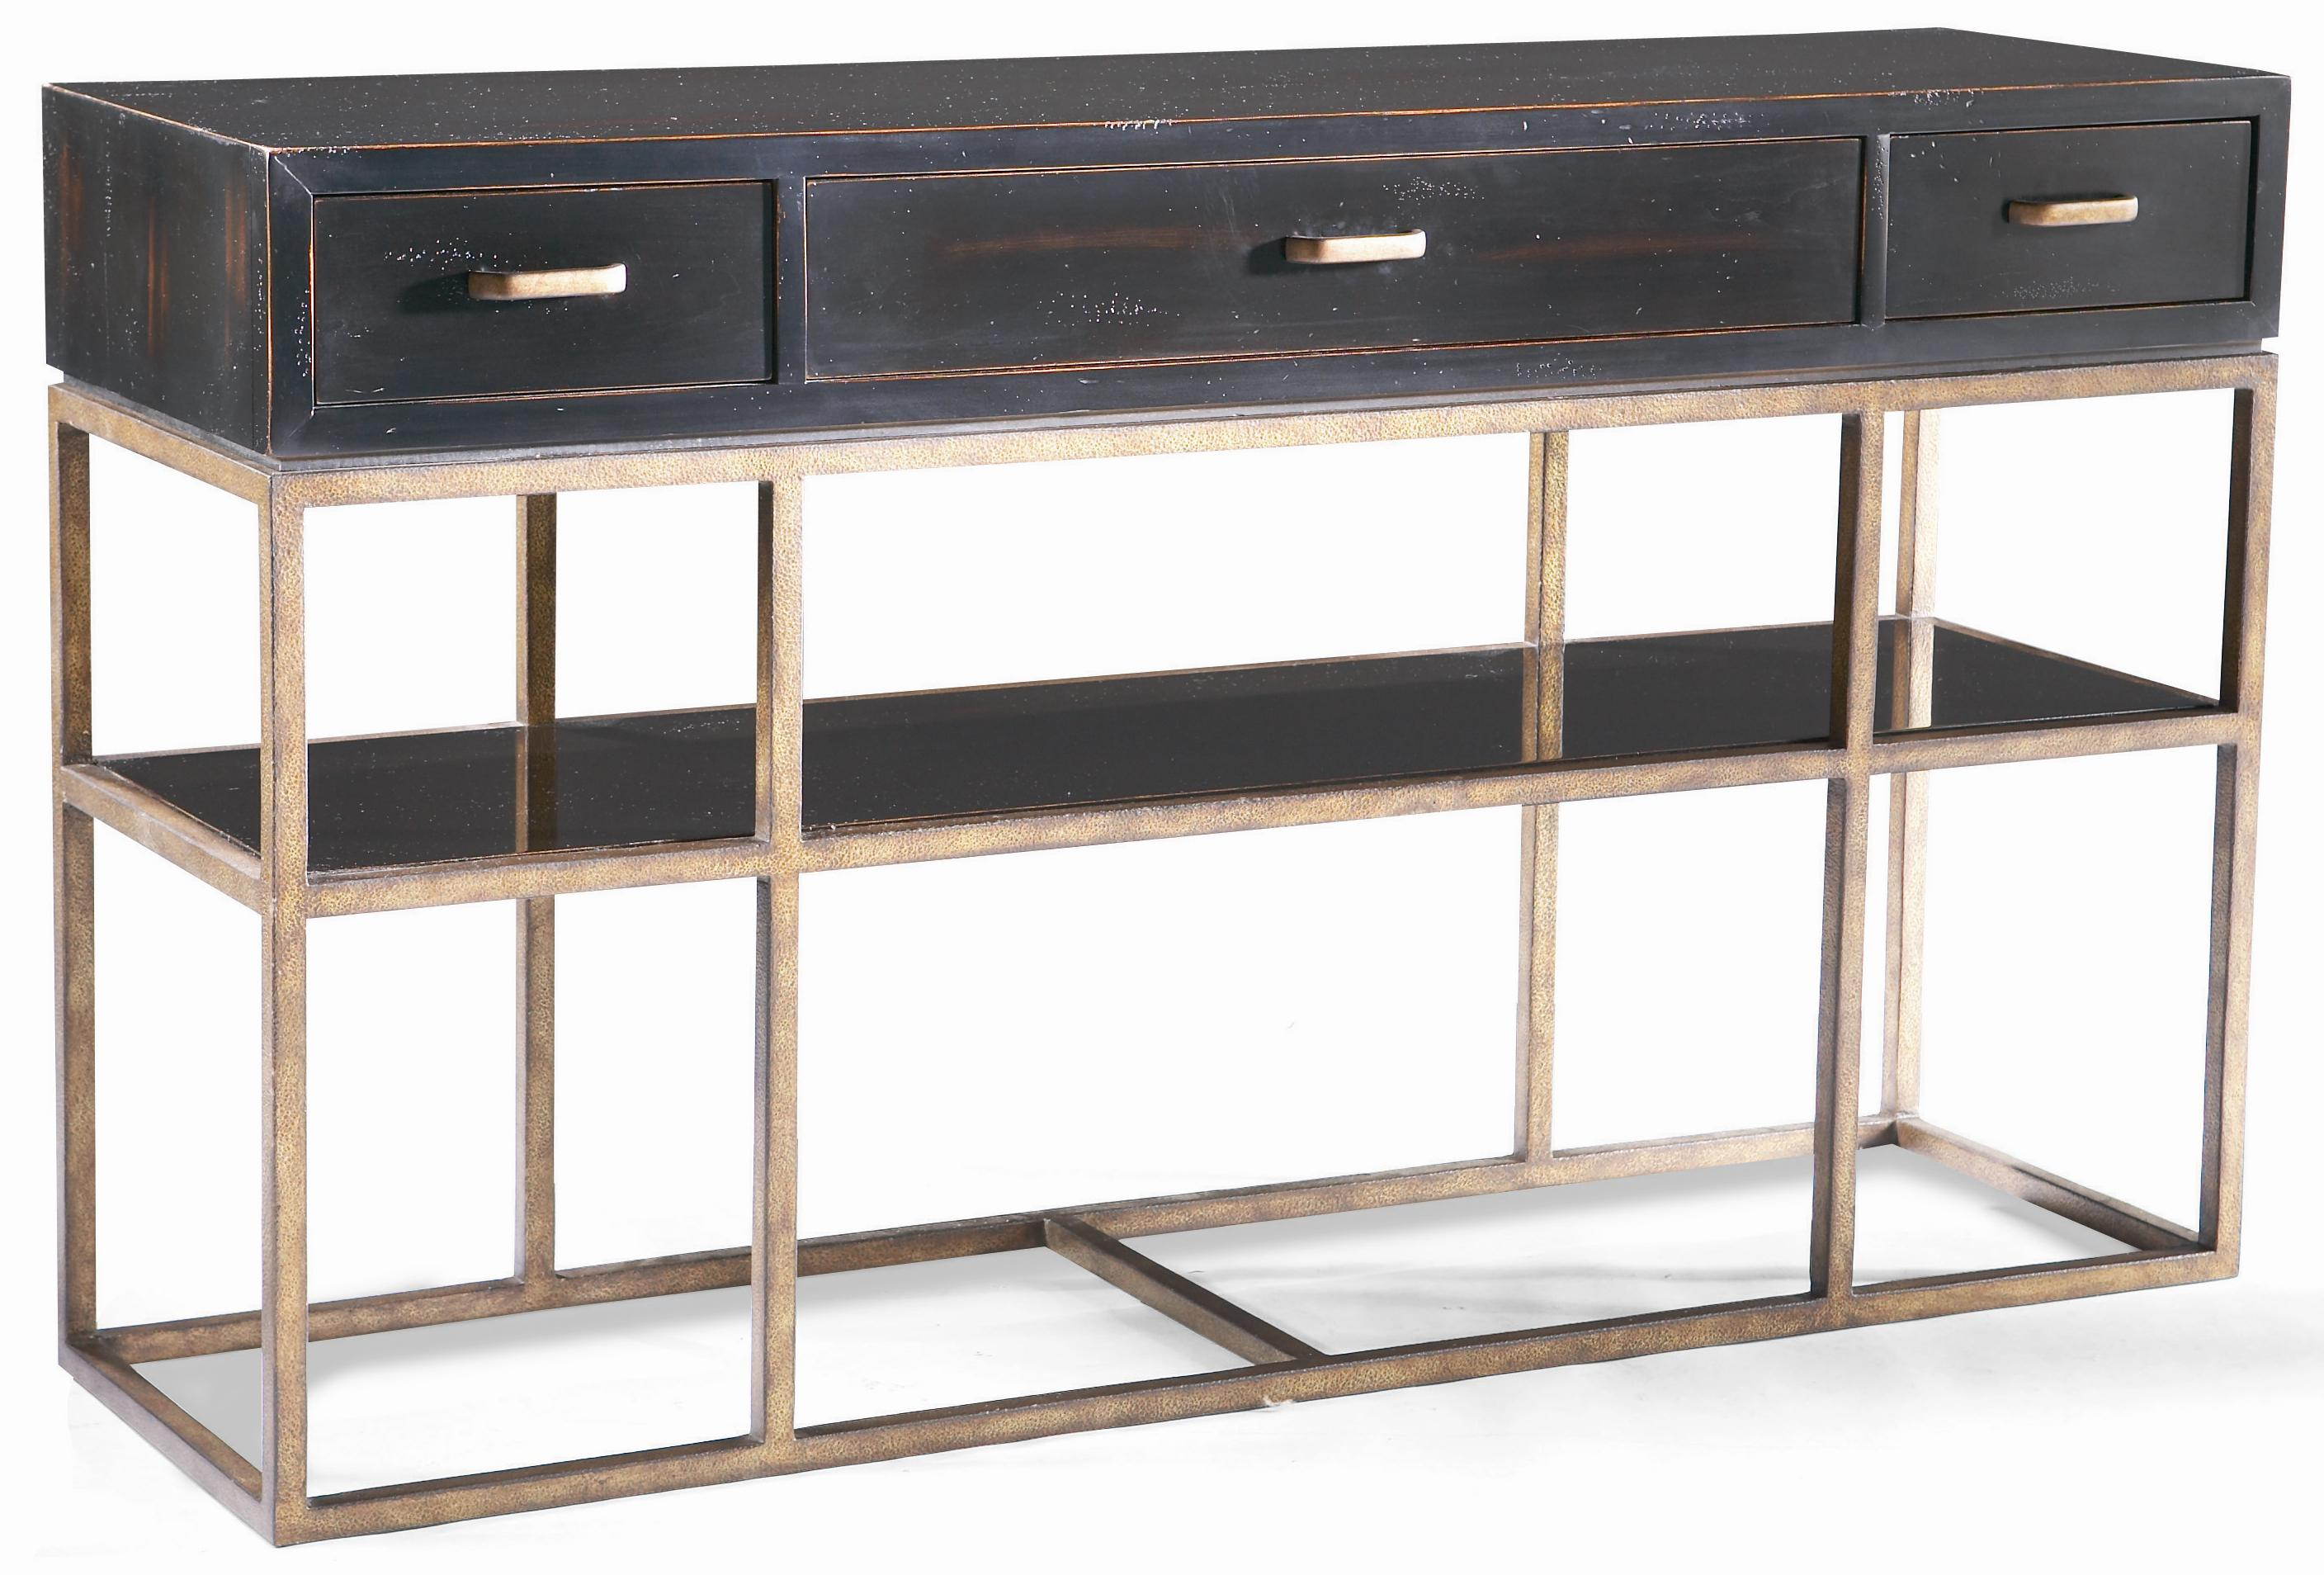 Cth Sherrill Occasional Metro Classics 322 770 Contemporary Console Table Baer S Furniture Sofa Tables Consoles